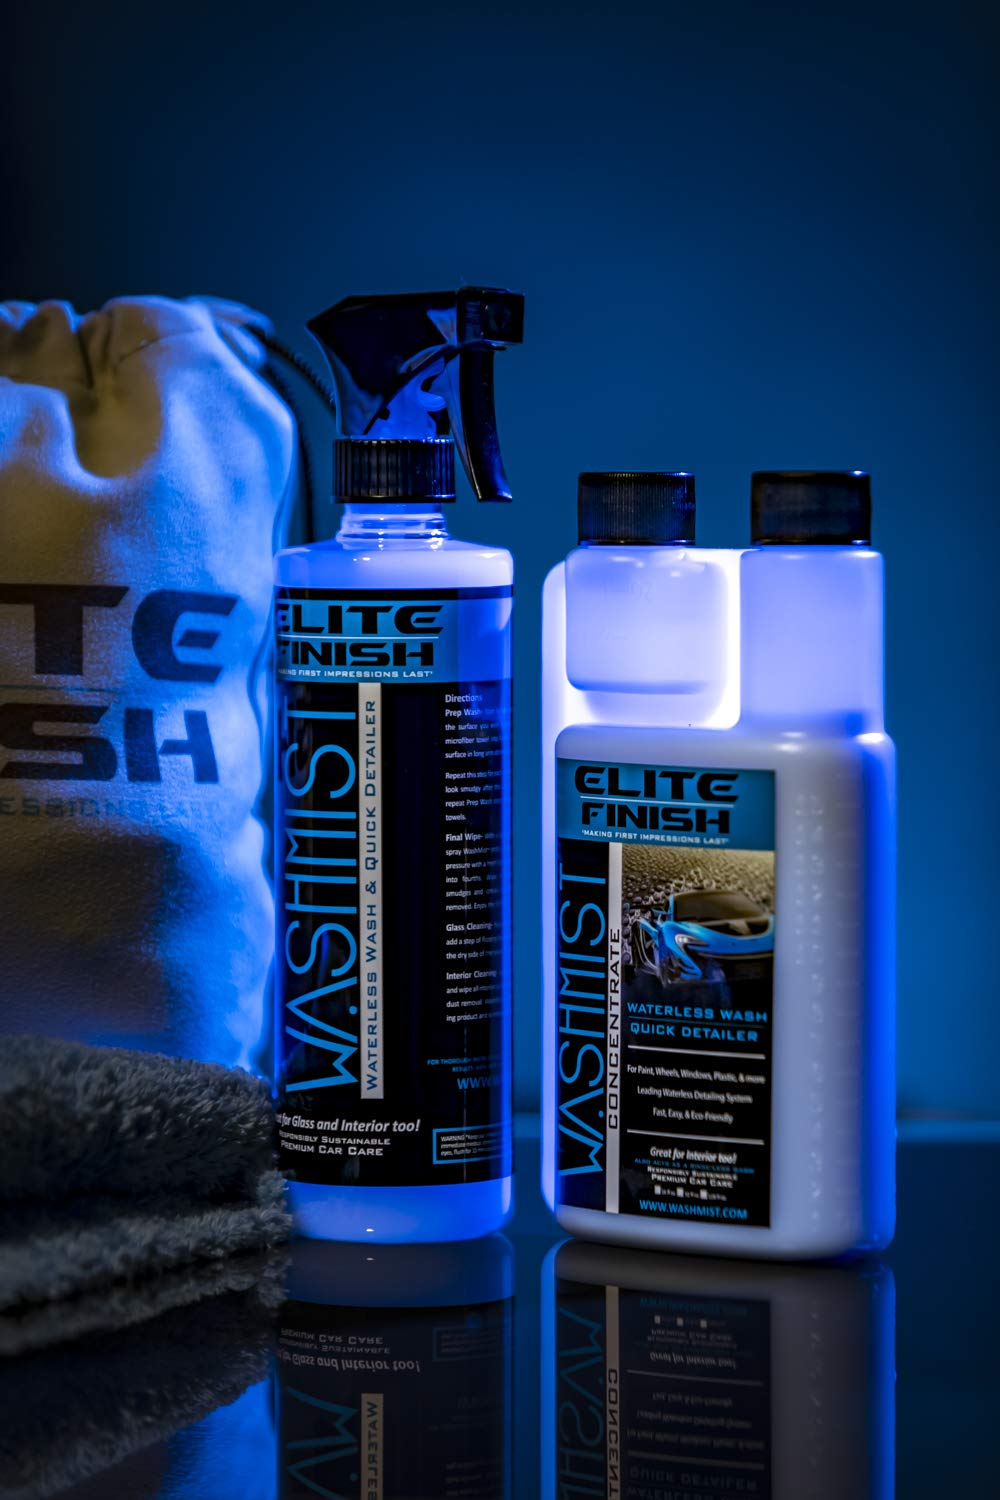 WashMist Waterless Car Wash Kit - Evolutionary Hydrophobic Polymer Technology - Eco-Friendly - Fast Easy to use; Clean Shine, virtually Anywhere, Anytime! by WashMist (Image #1)